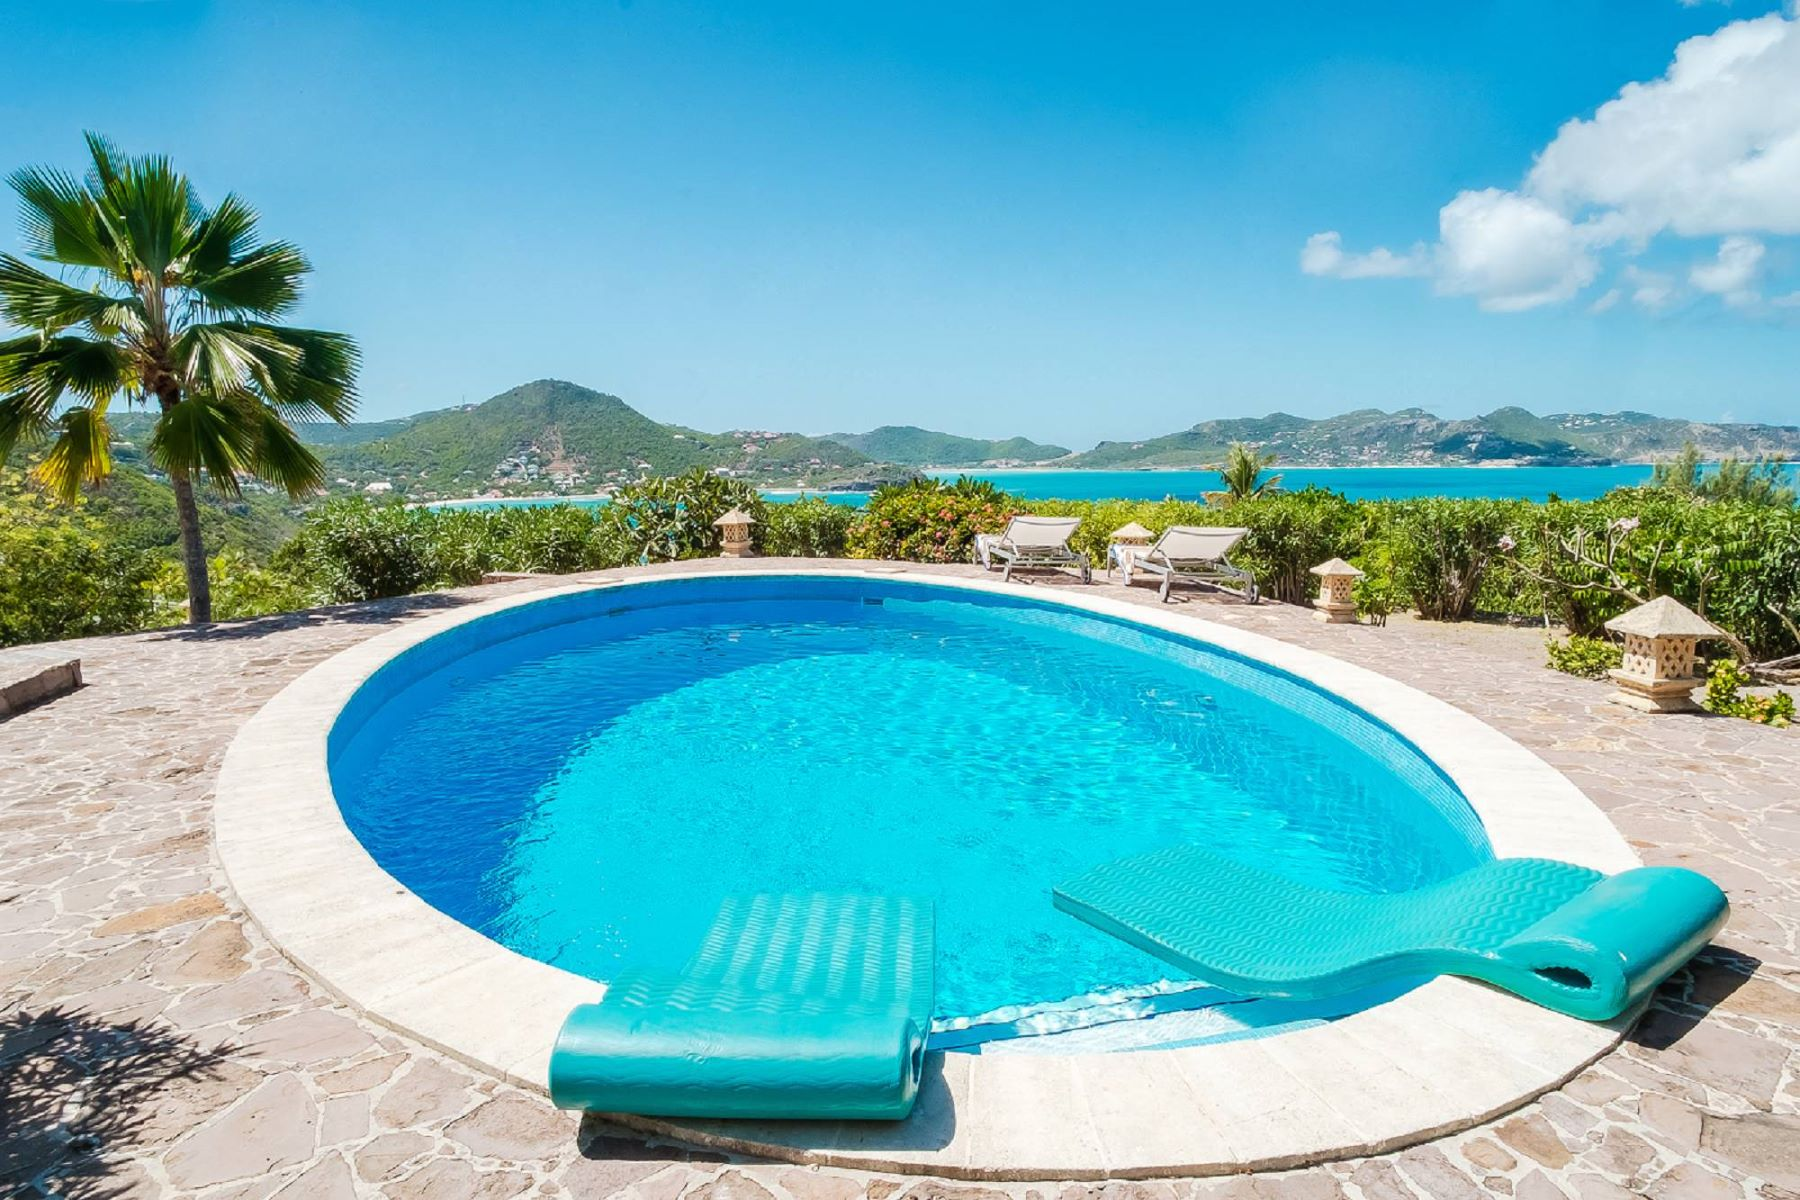 Single Family Homes for Sale at Villa Ariosa Pointe Milou Other St. Barthelemy, Cities In St. Barthelemy 97133 St. Barthelemy